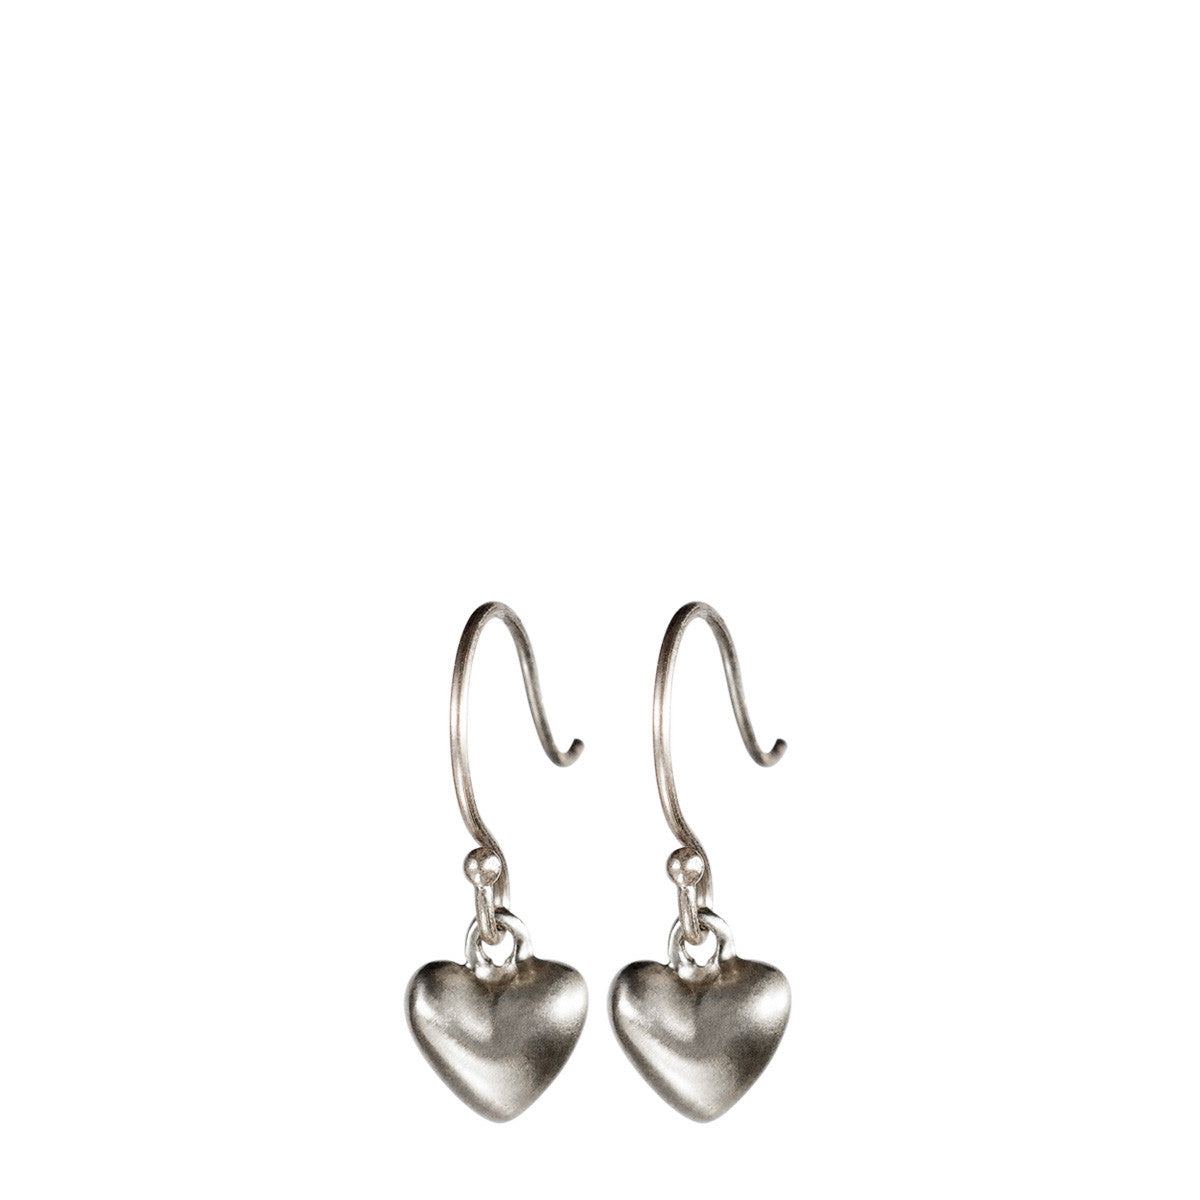 07b437449b05 Sterling Silver Hanging Tiny Heart Earring - Me Ro